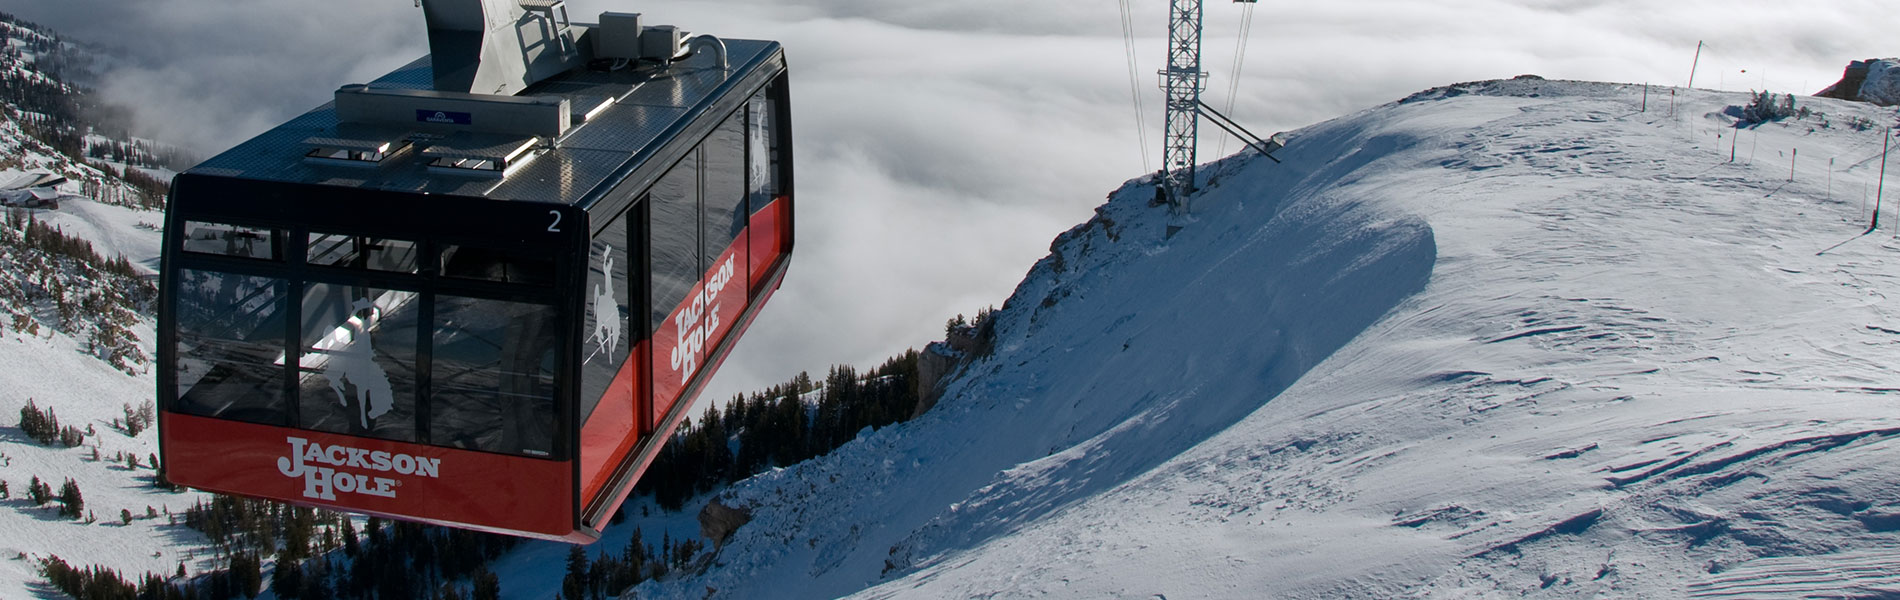 Jackson Hole gondola on mountain top